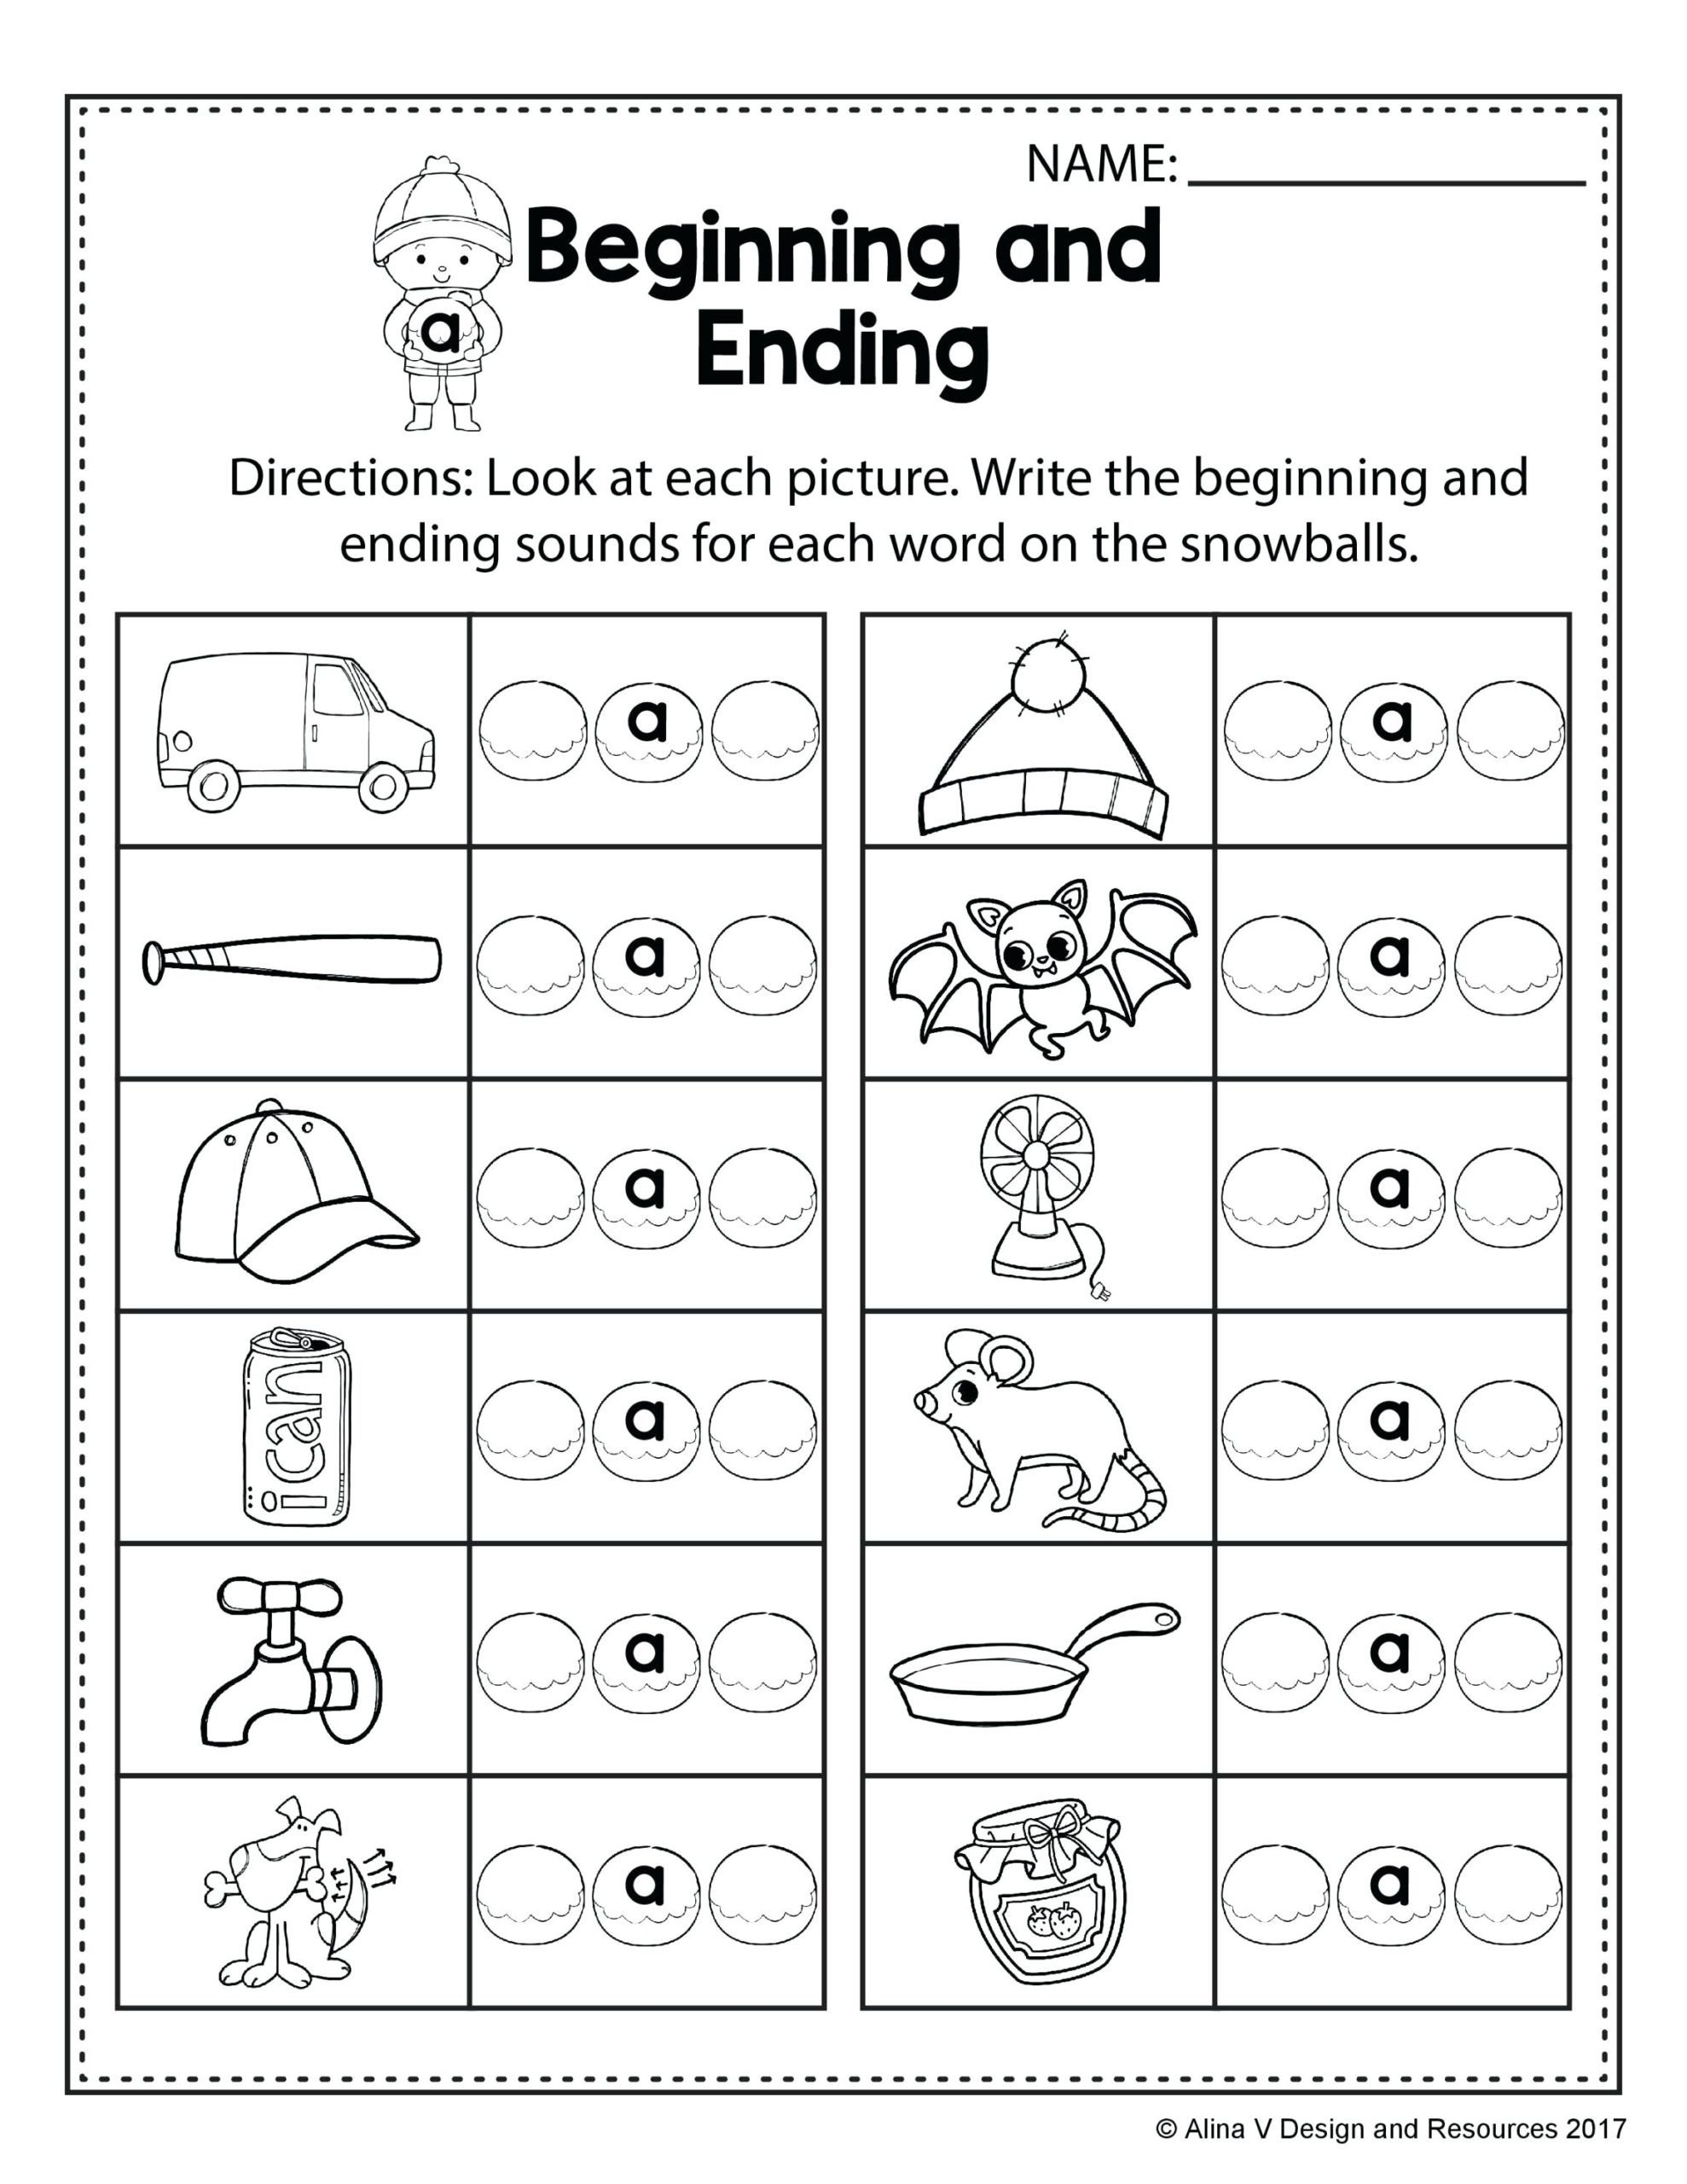 Saxon Math Second Grade Worksheets Math Worksheet Math Worksheet Stunning Homework Sheets for